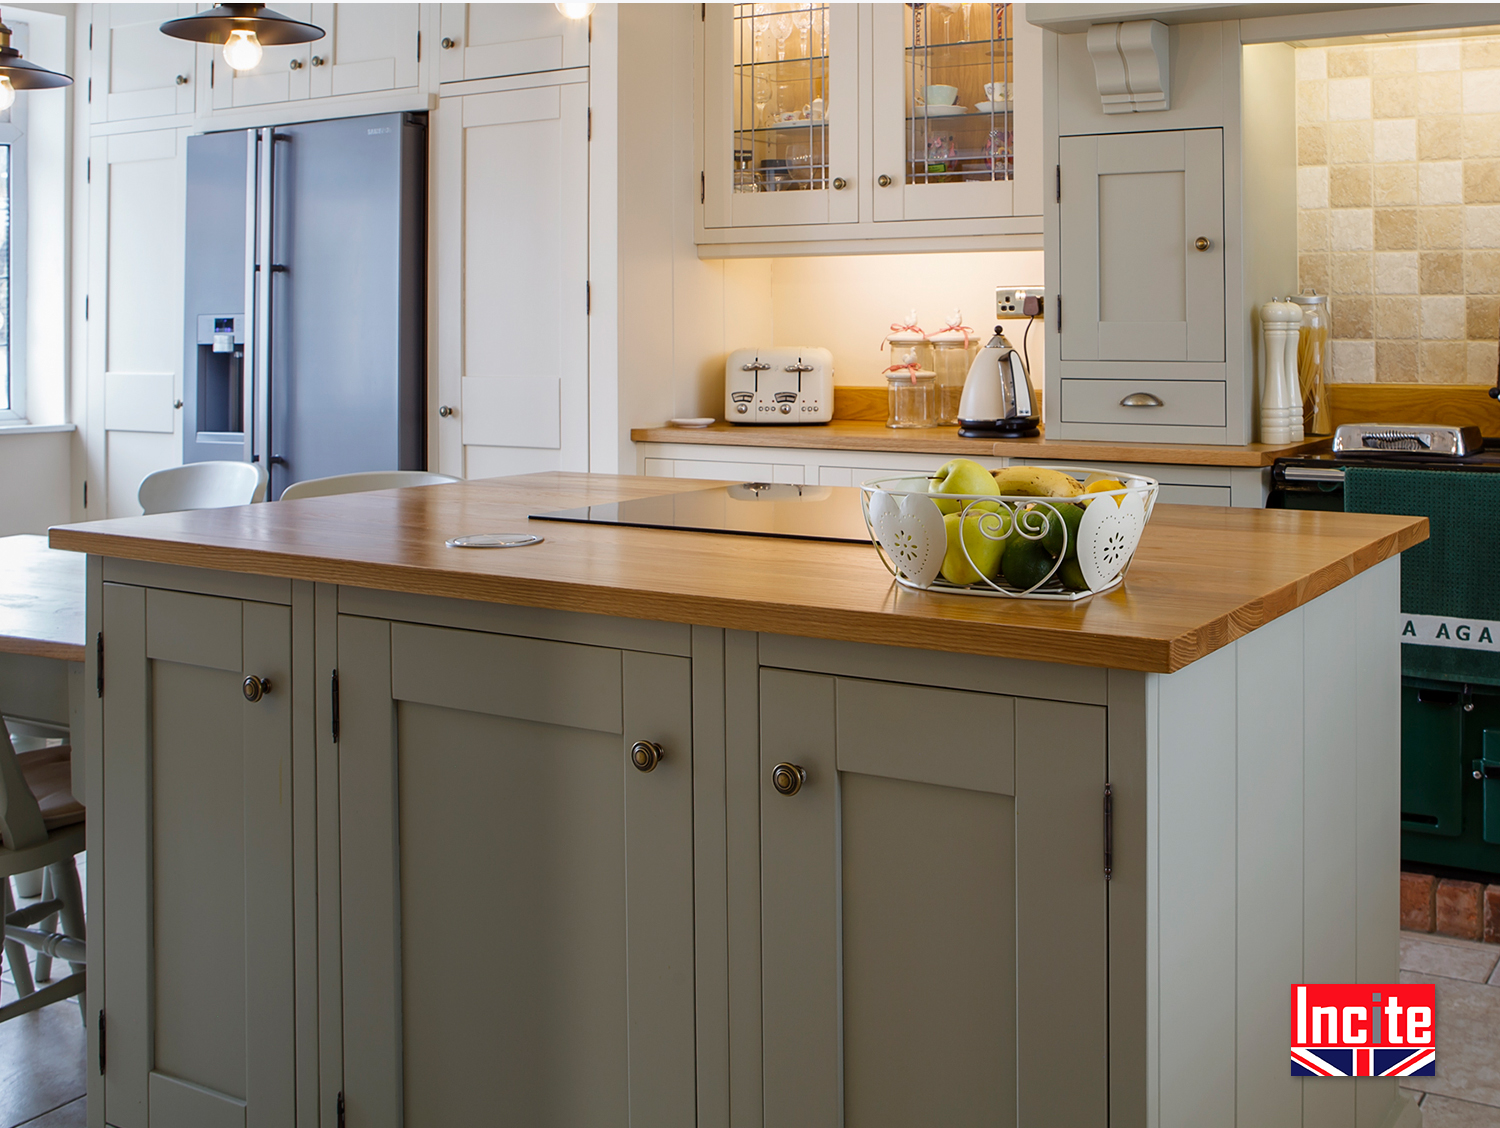 Custom Made In Derbyshire Painted Kitchen Island By Incite